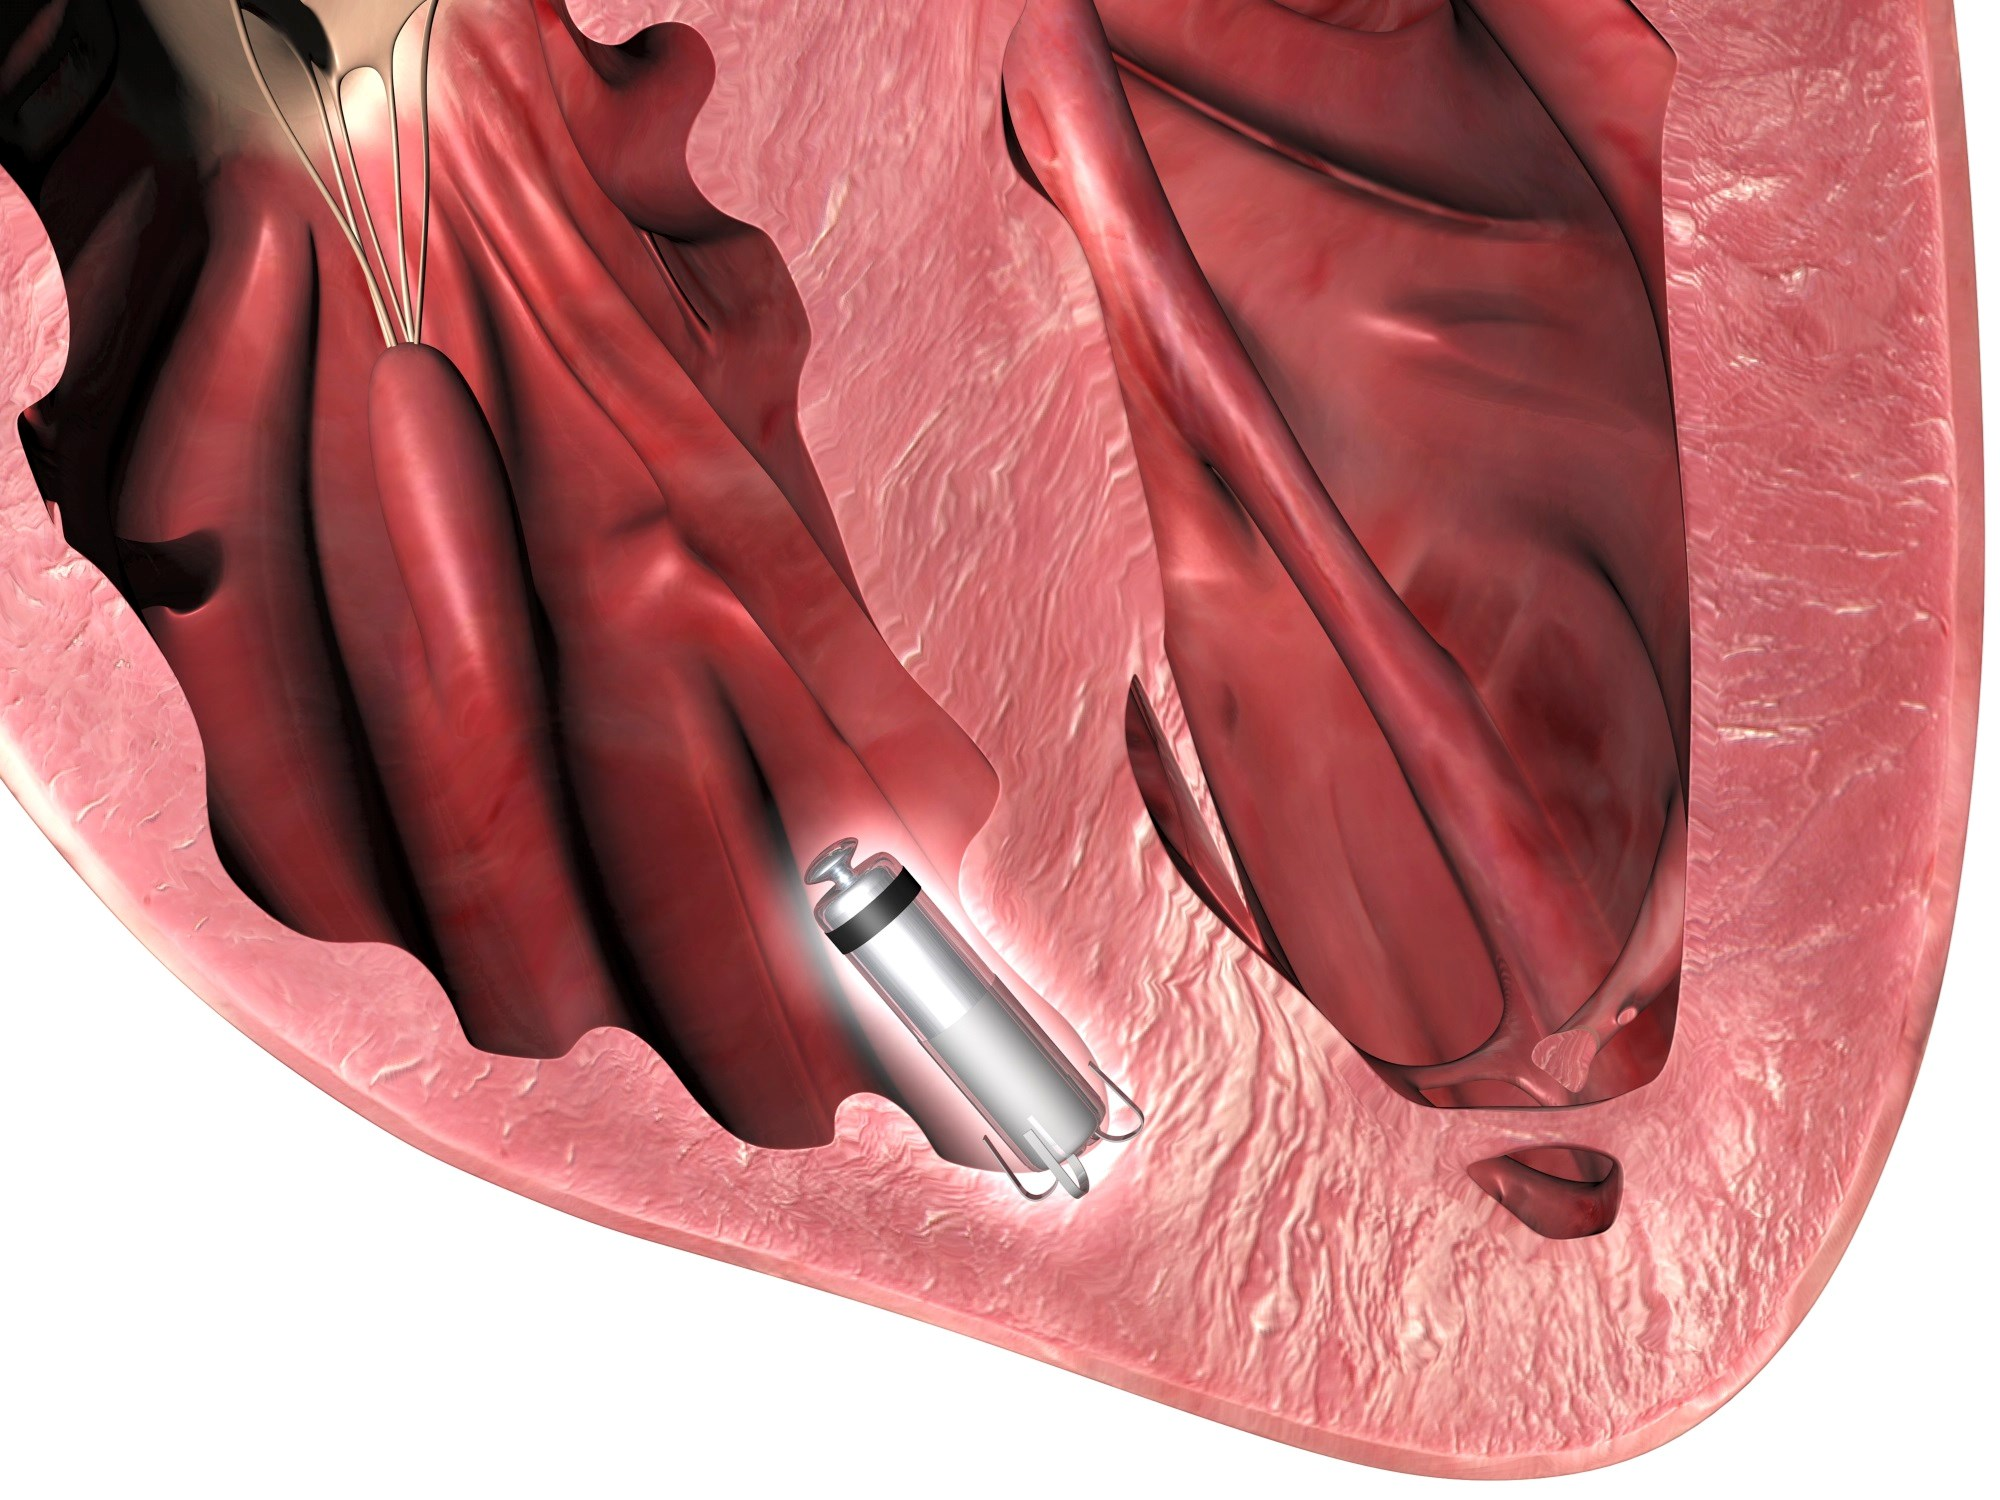 Leadless Pacemakers Associated With Fewer Complications